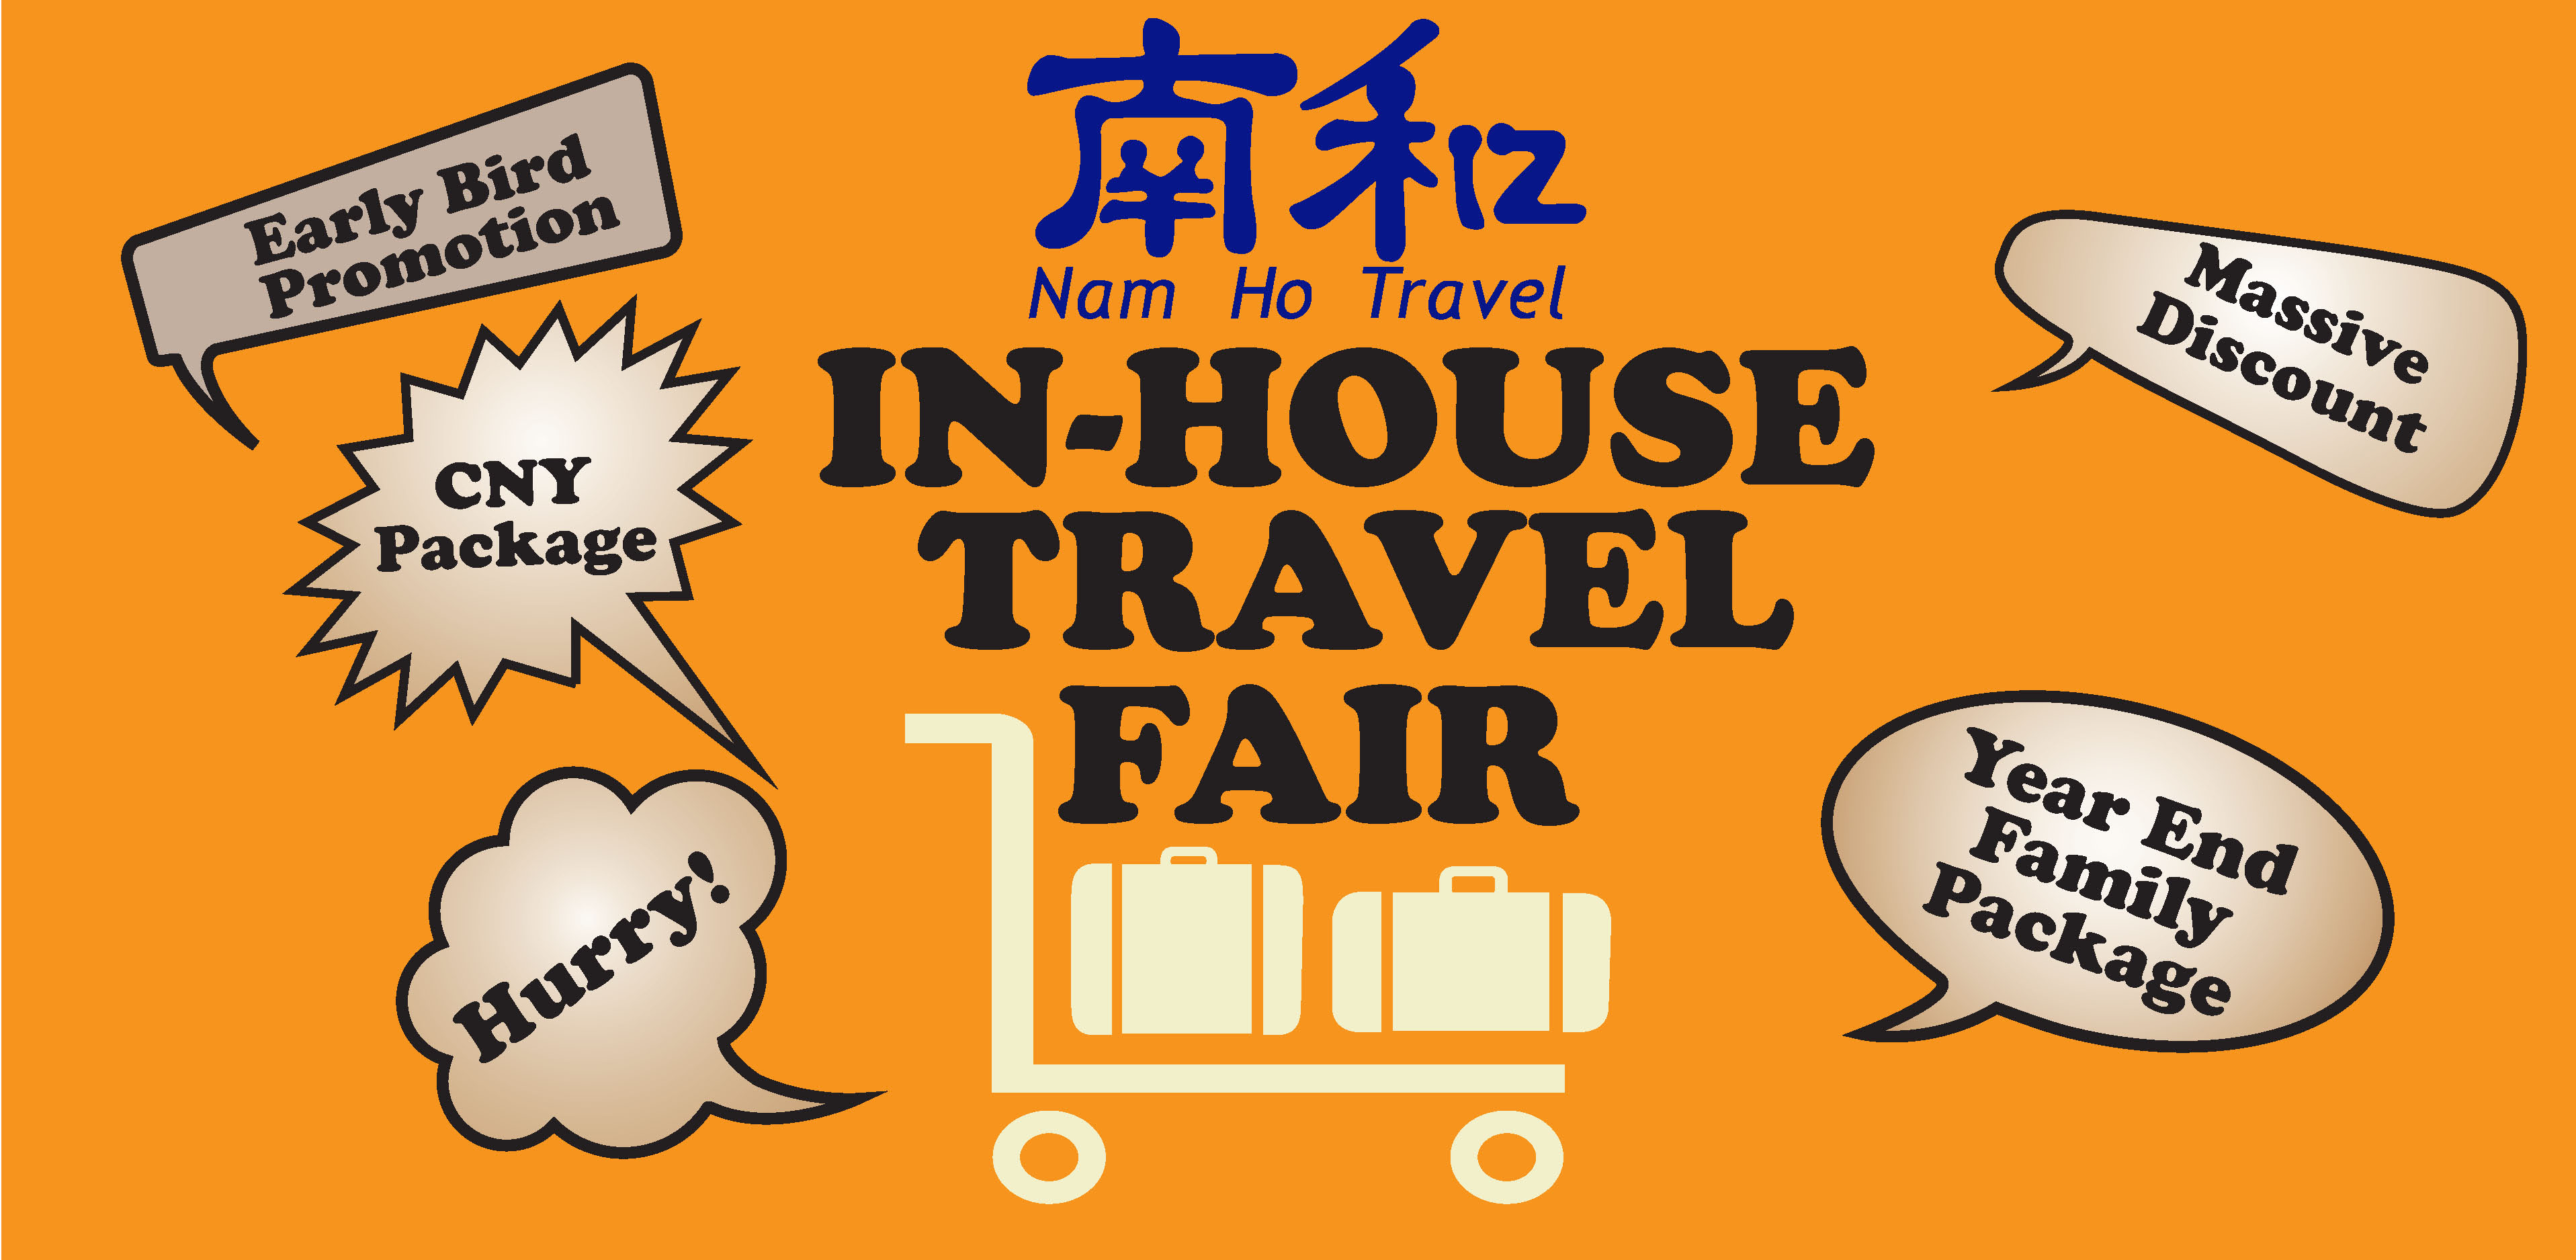 Nam Ho Travel In-House Travel Fair